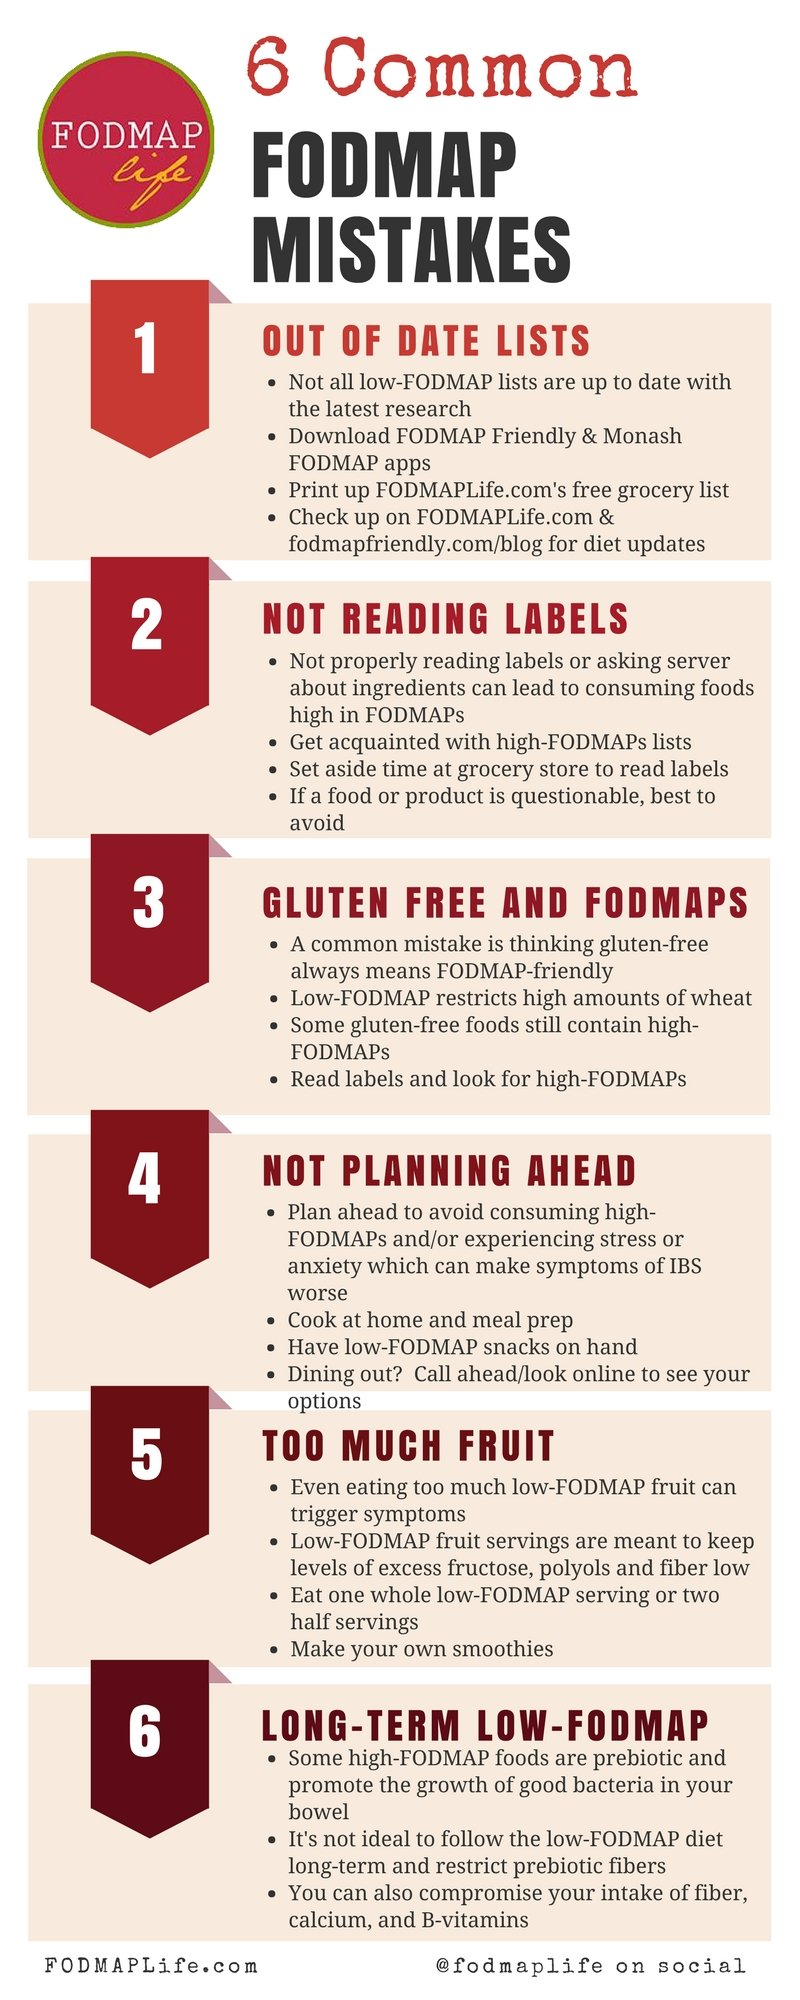 6 common fodmap mistakes